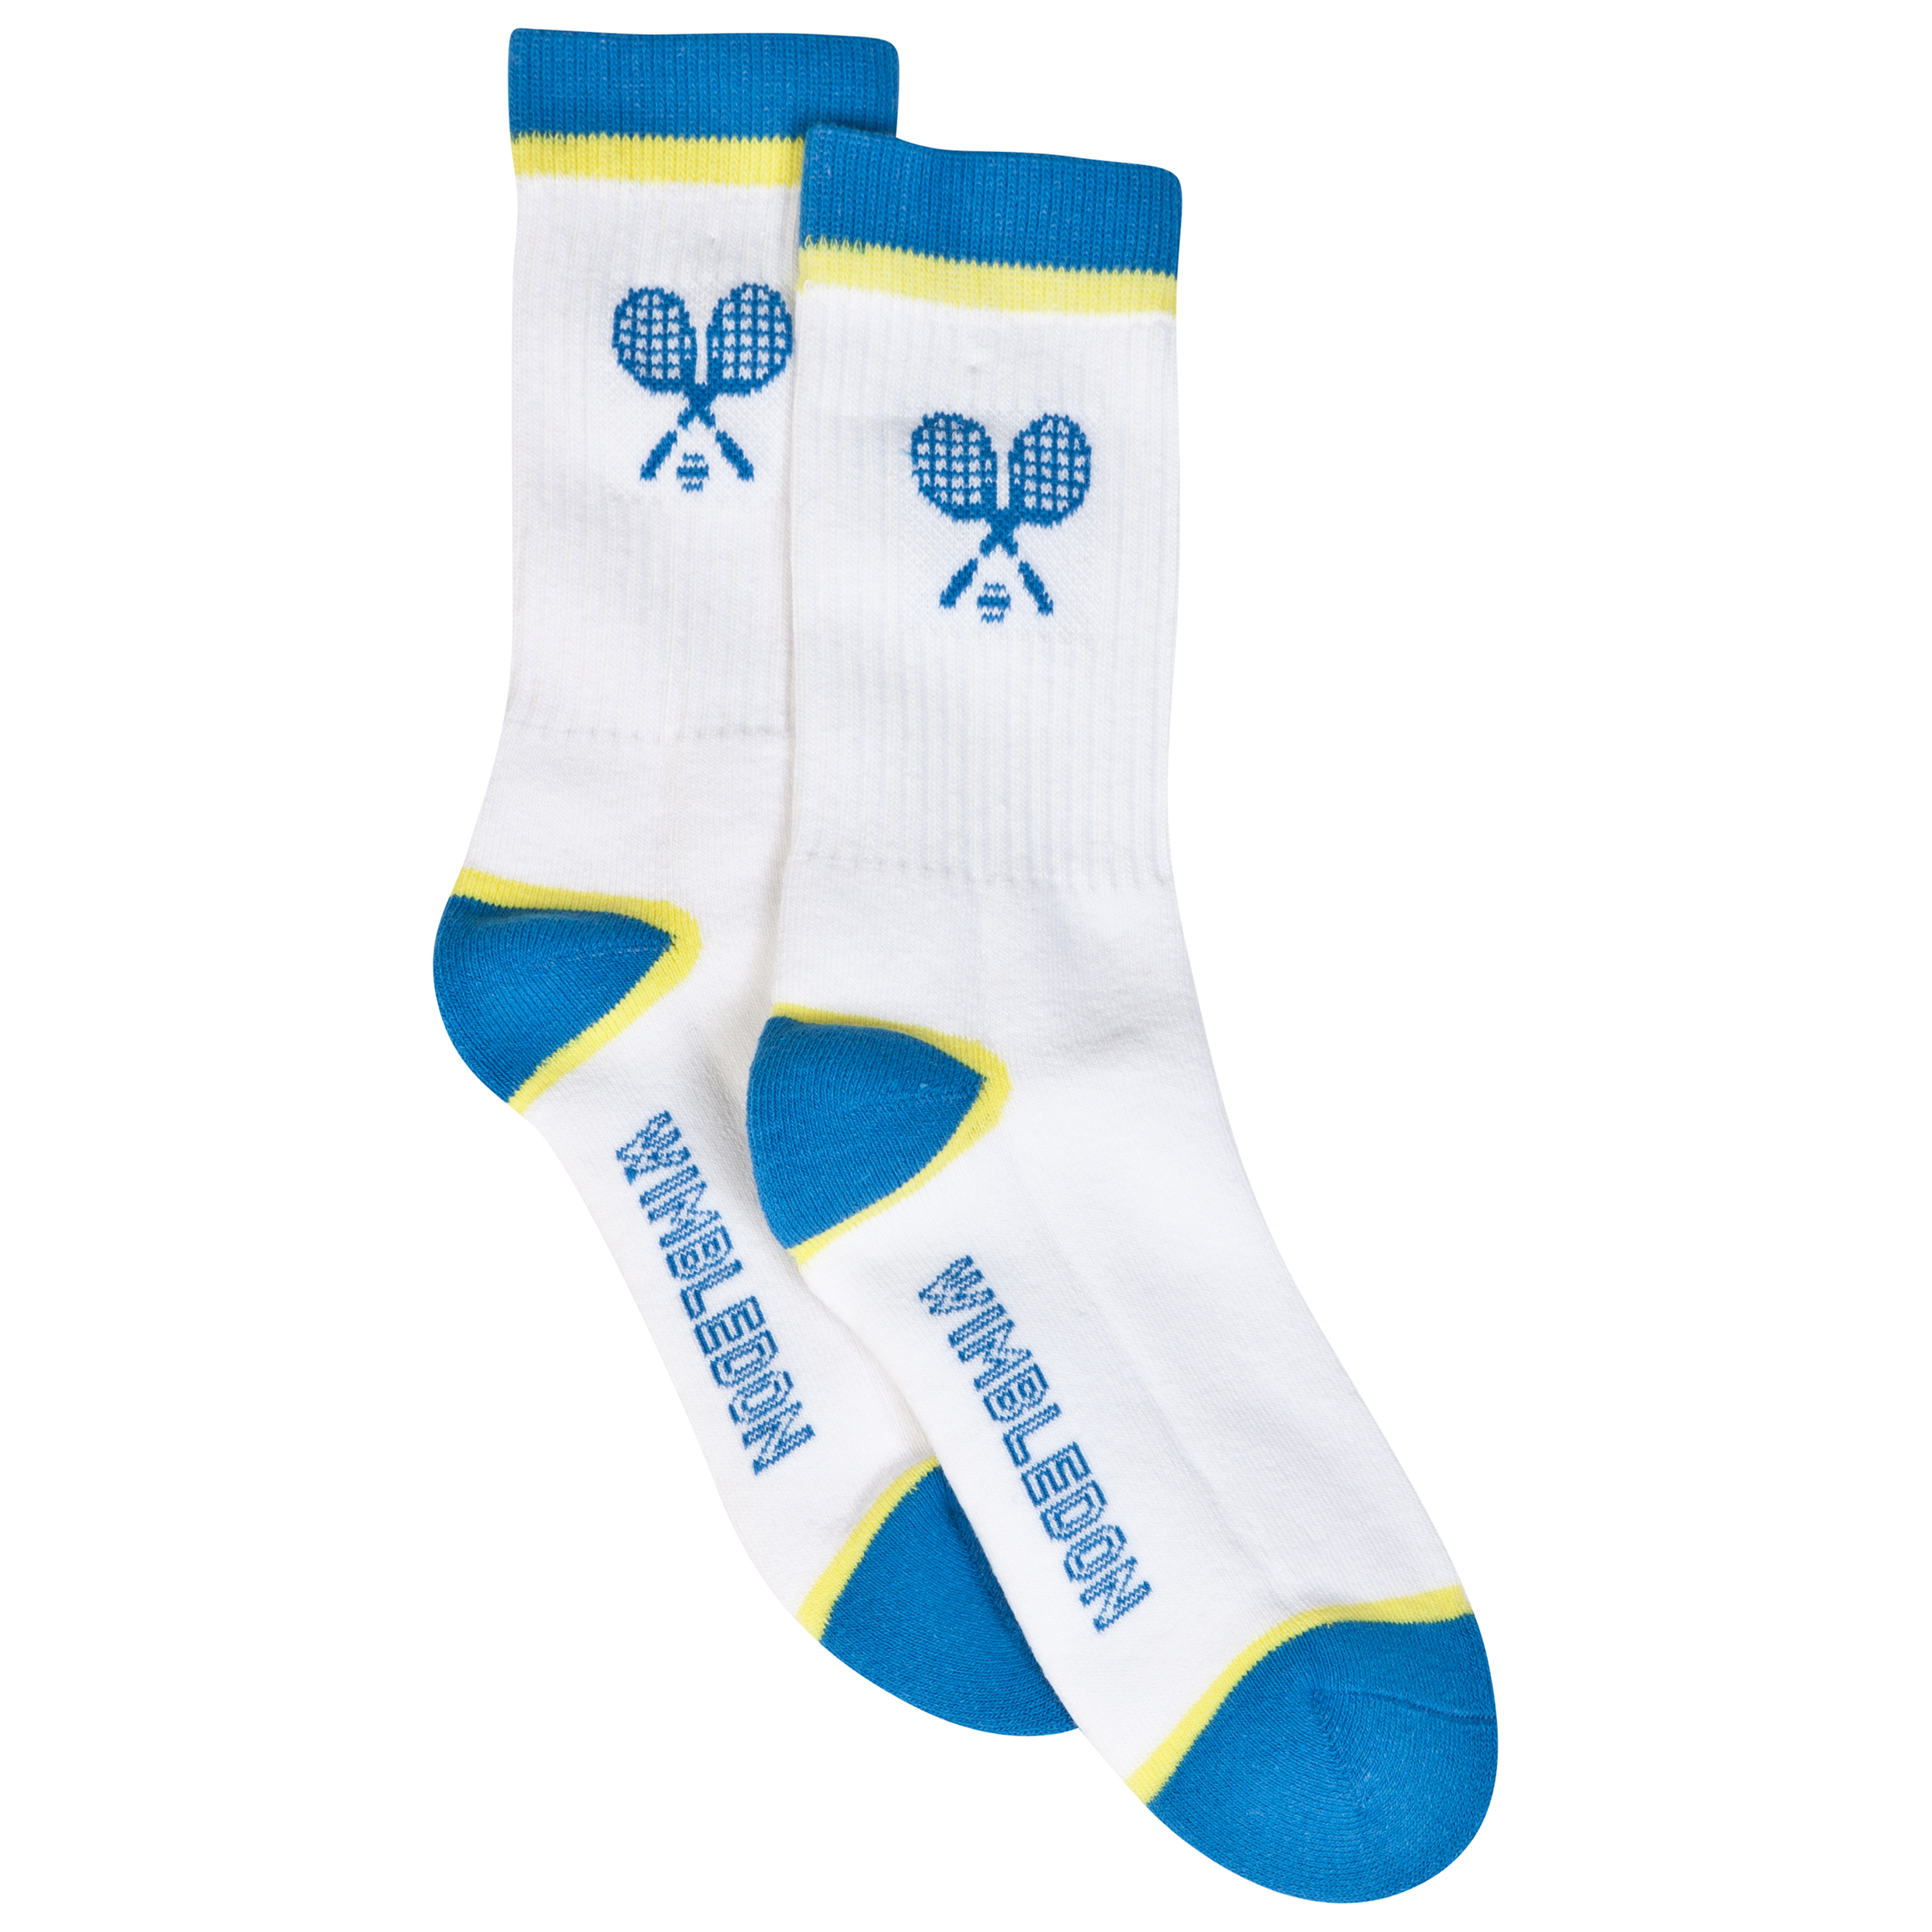 Wimbledon Tennis Socks - Kids White